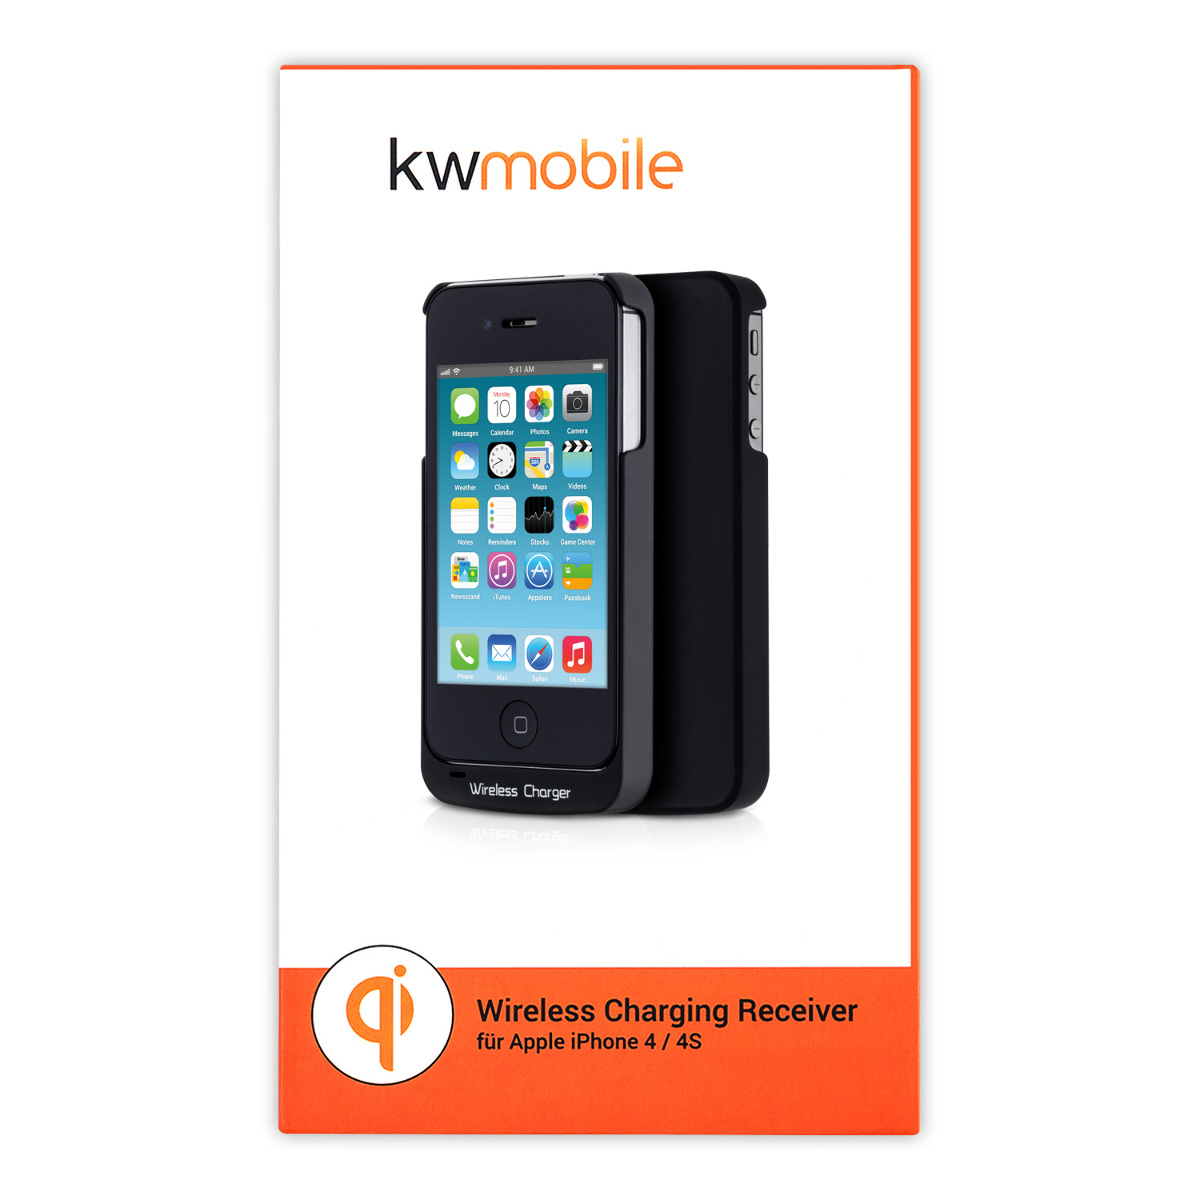 qi wireless charging receiver for apple iphone 4s wireless charger ebay. Black Bedroom Furniture Sets. Home Design Ideas